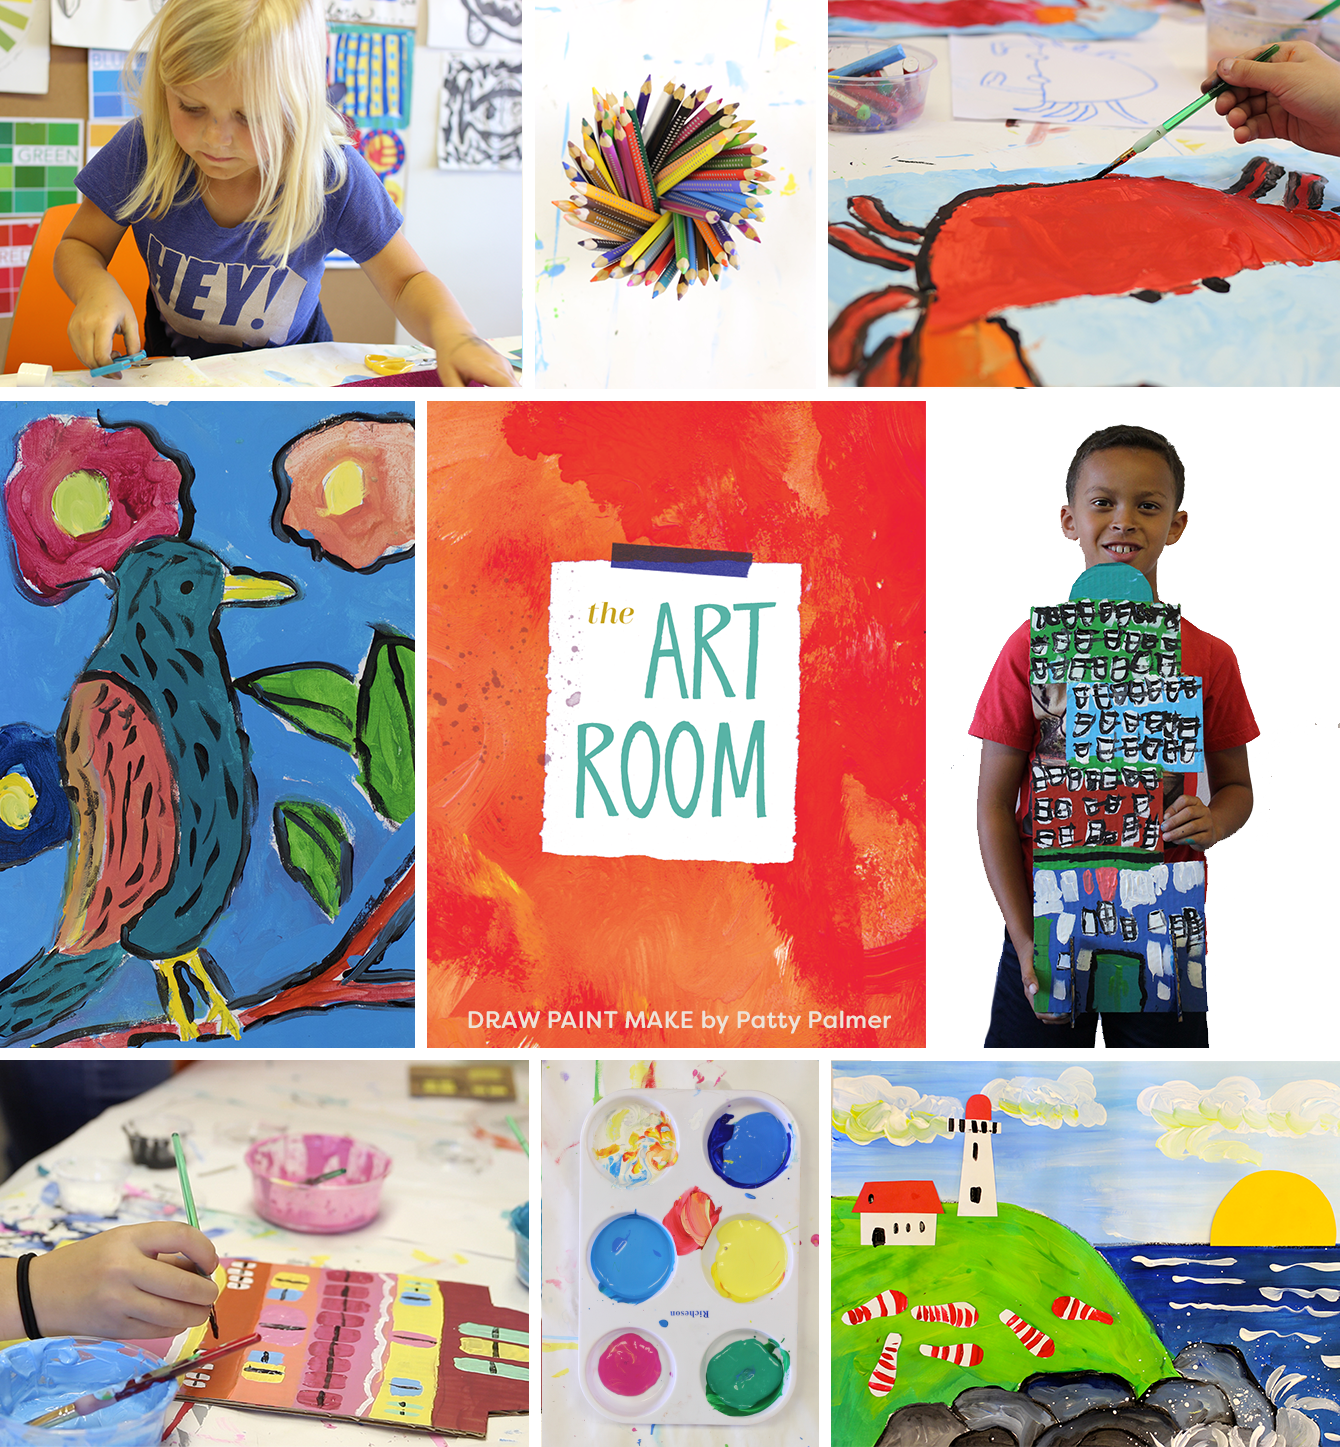 Draw Paint Make Creative Projects from an Elementary Art Teacher Patty Palmer